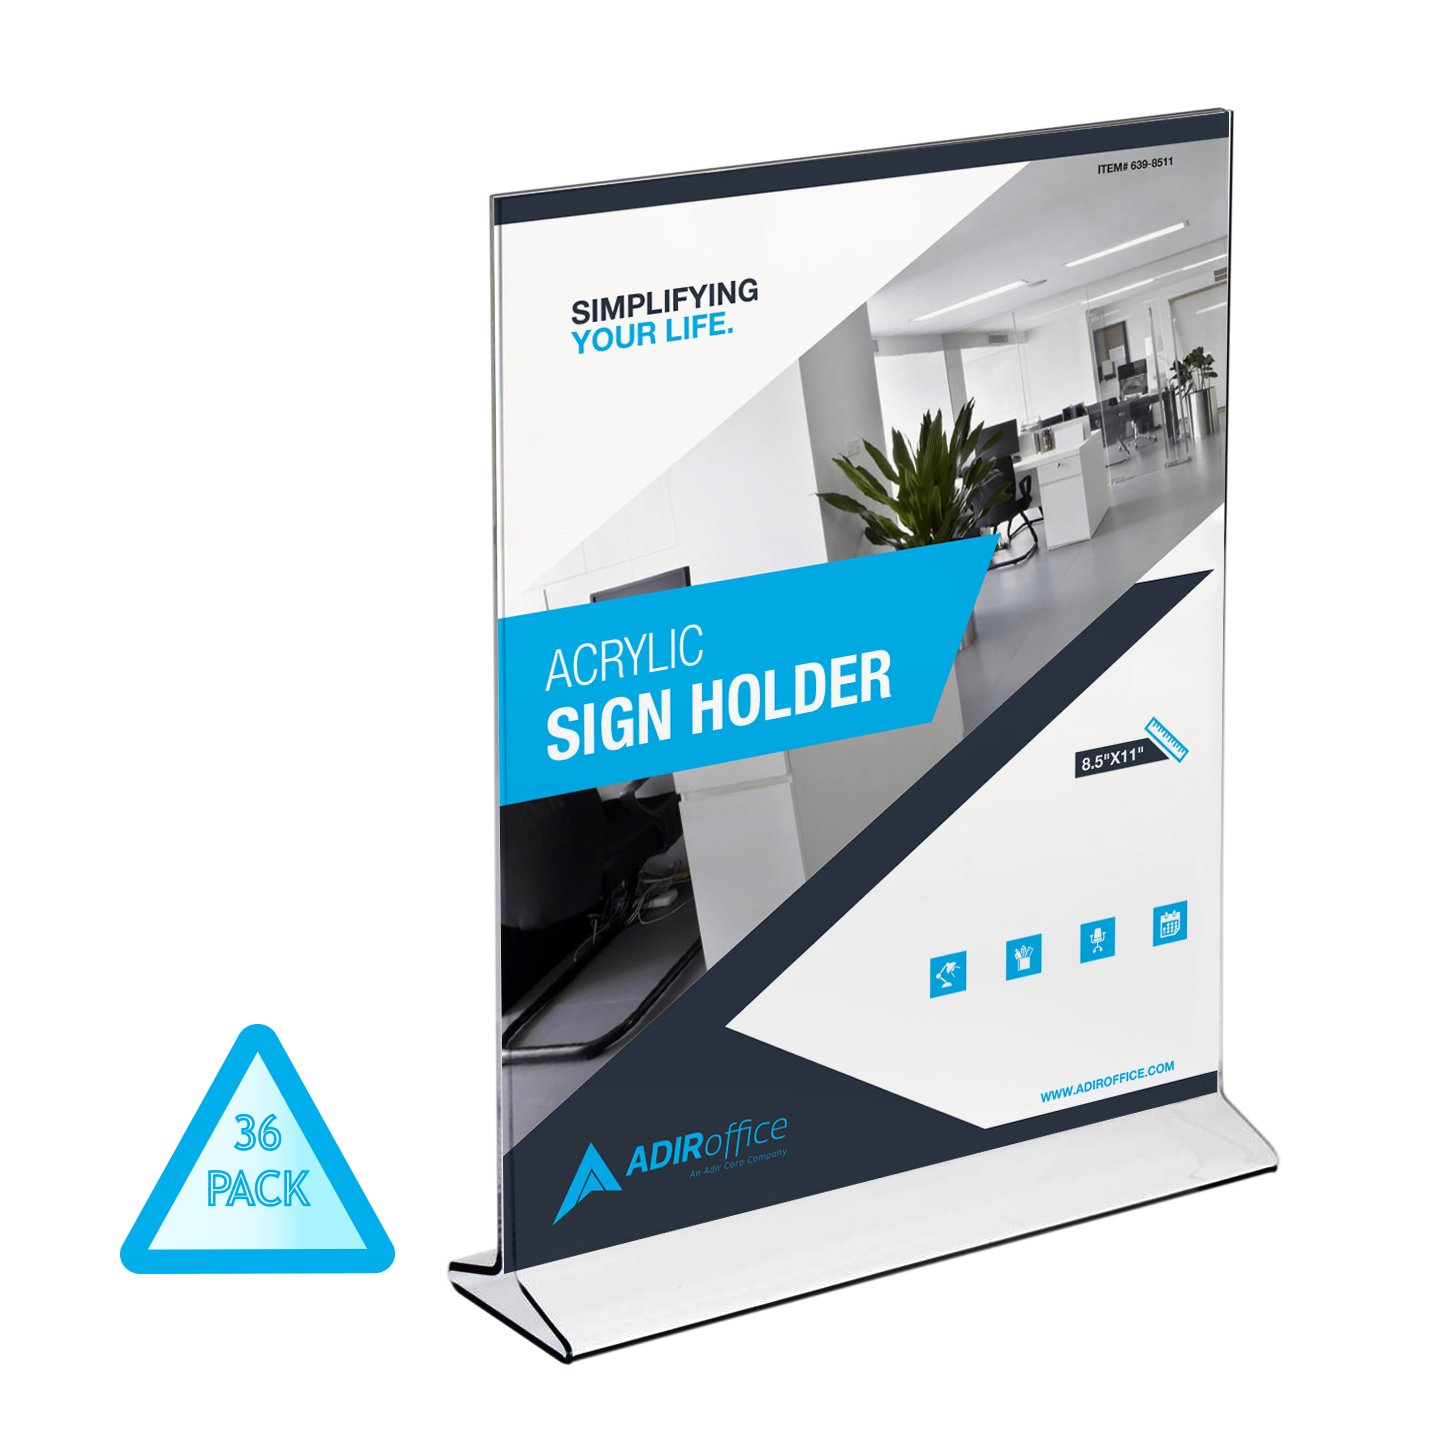 AdirOffice Table Card Display – Portrait Style Menu Ad Frame – Top Insert – Clear Acrylic (36 Pack, 8.5x11)